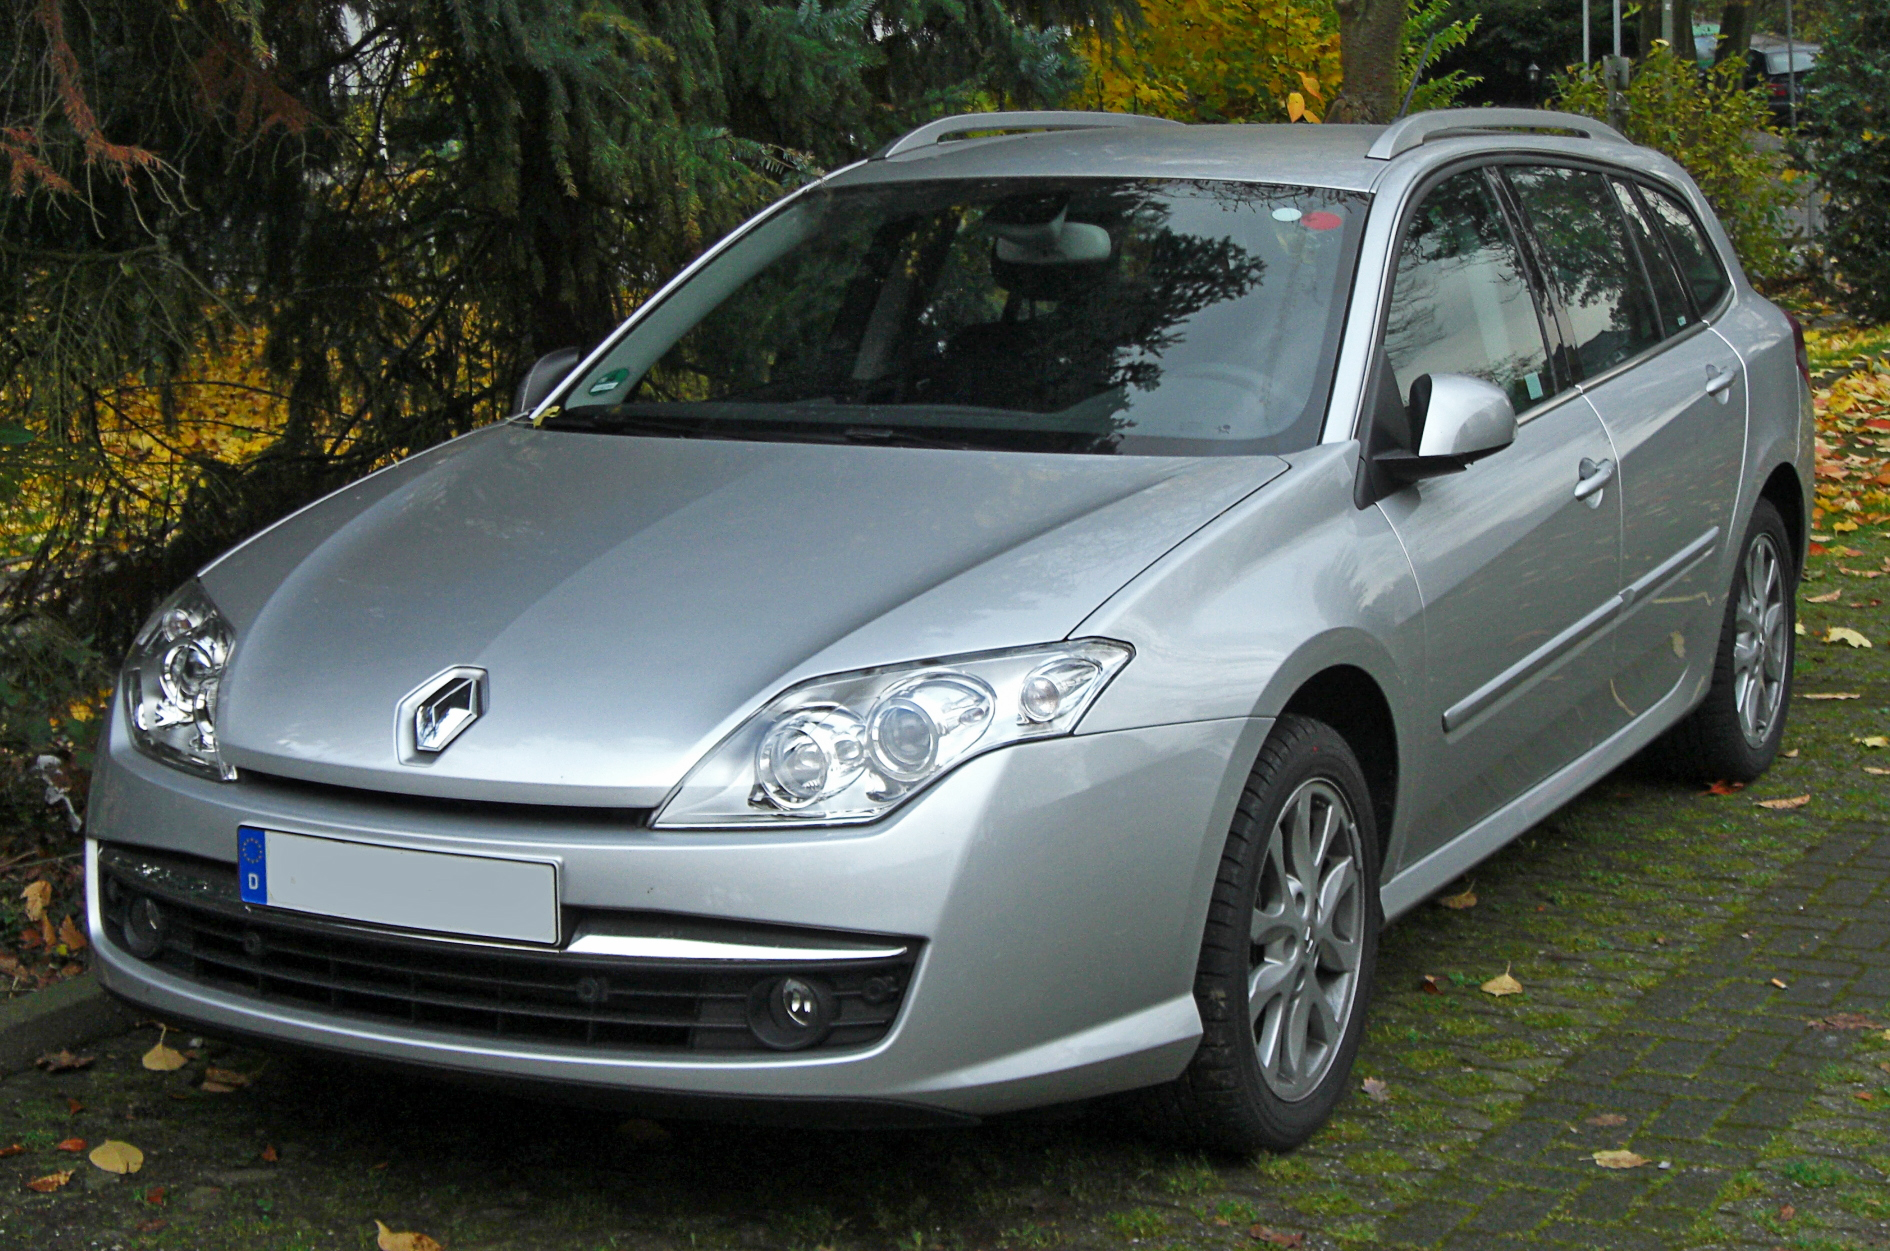 file renault laguna iii grandtour seit 2007 front mj jpg wikimedia commons. Black Bedroom Furniture Sets. Home Design Ideas